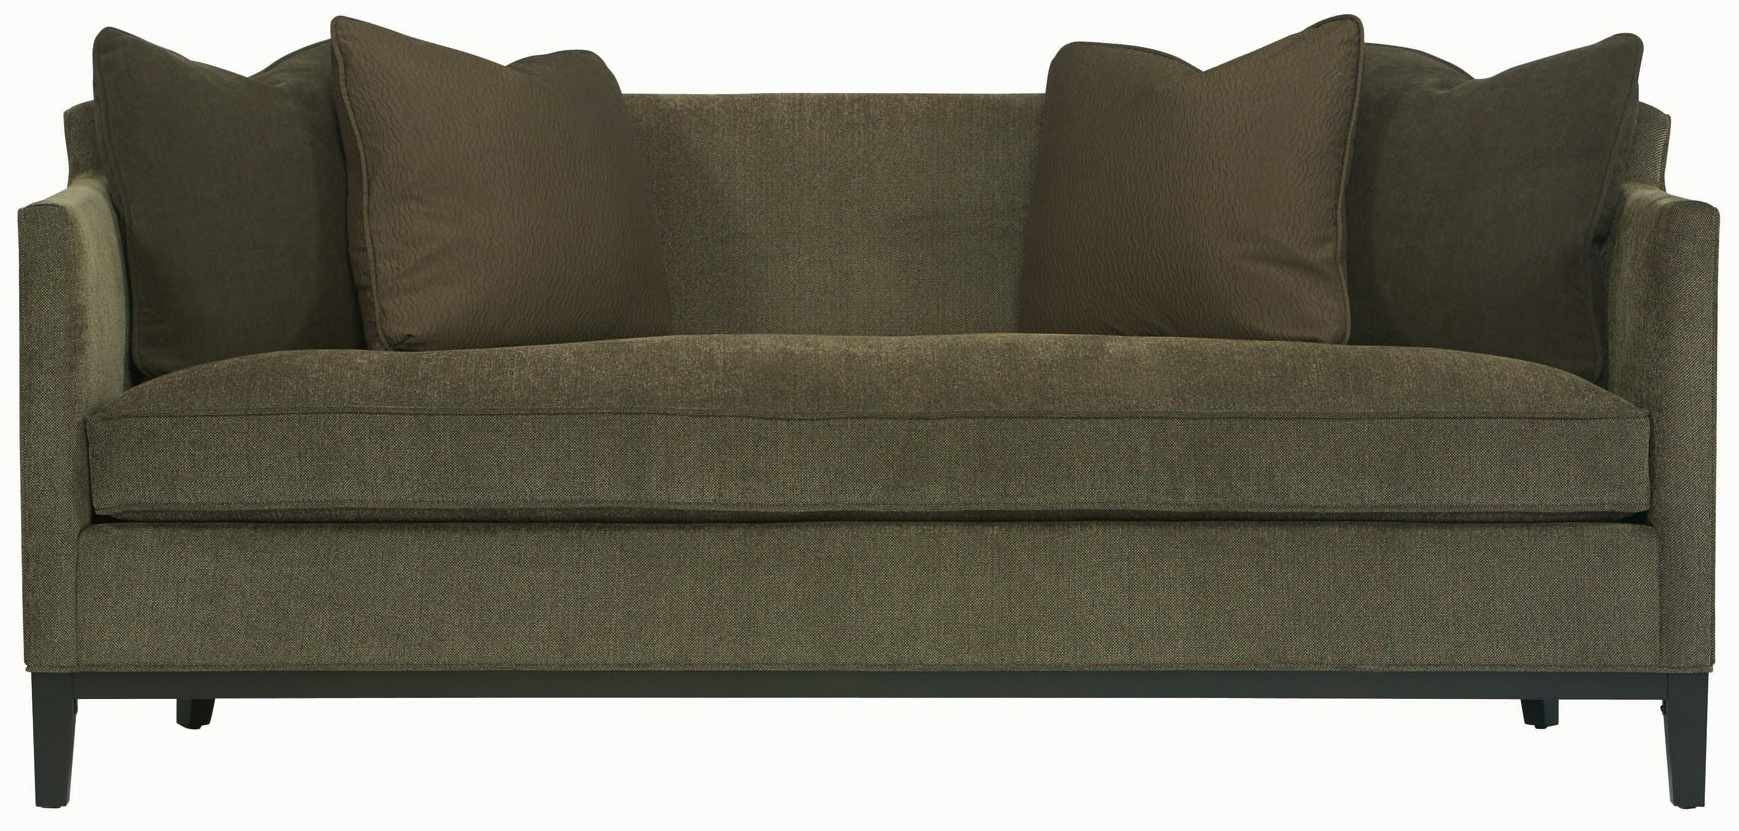 Ethel Sofa